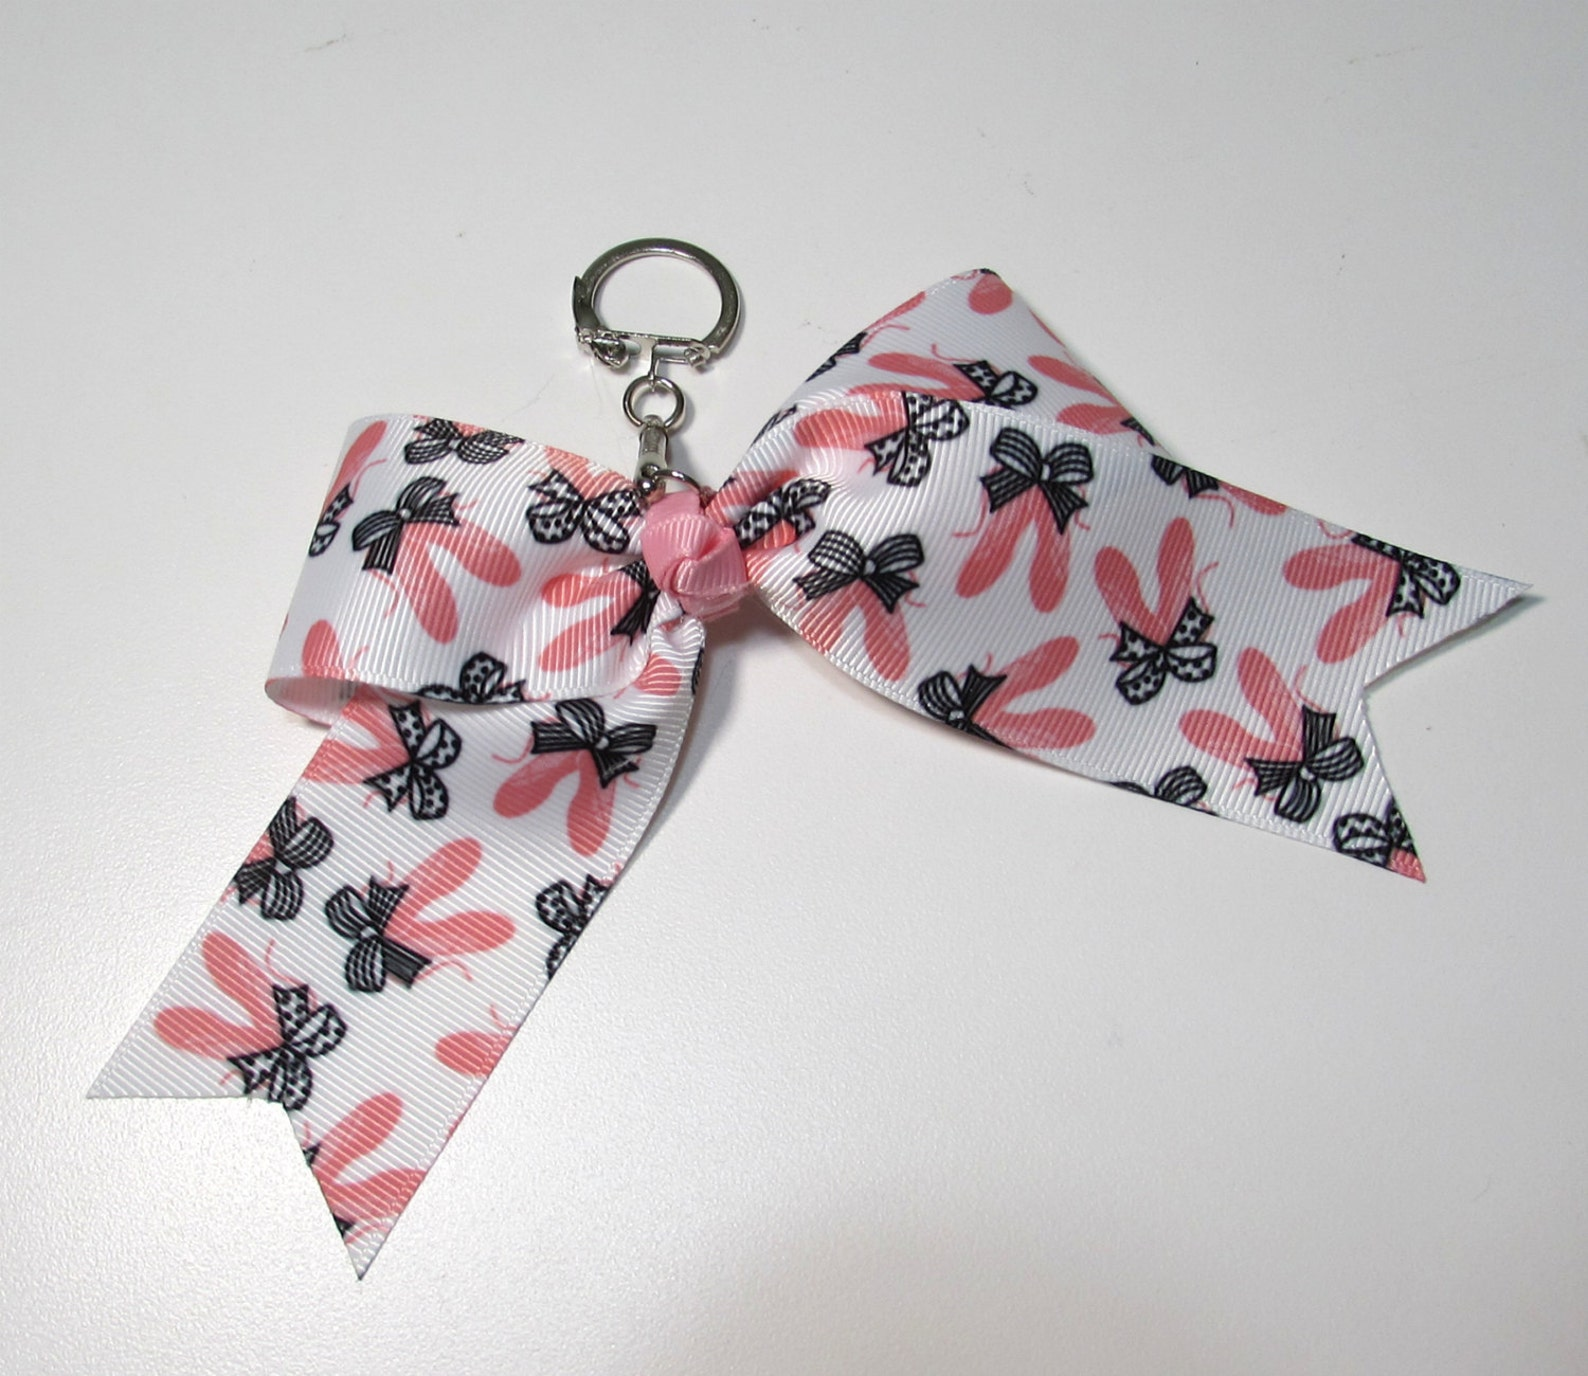 ballet cheer style bow key chain with ballet shoes and latching clasp